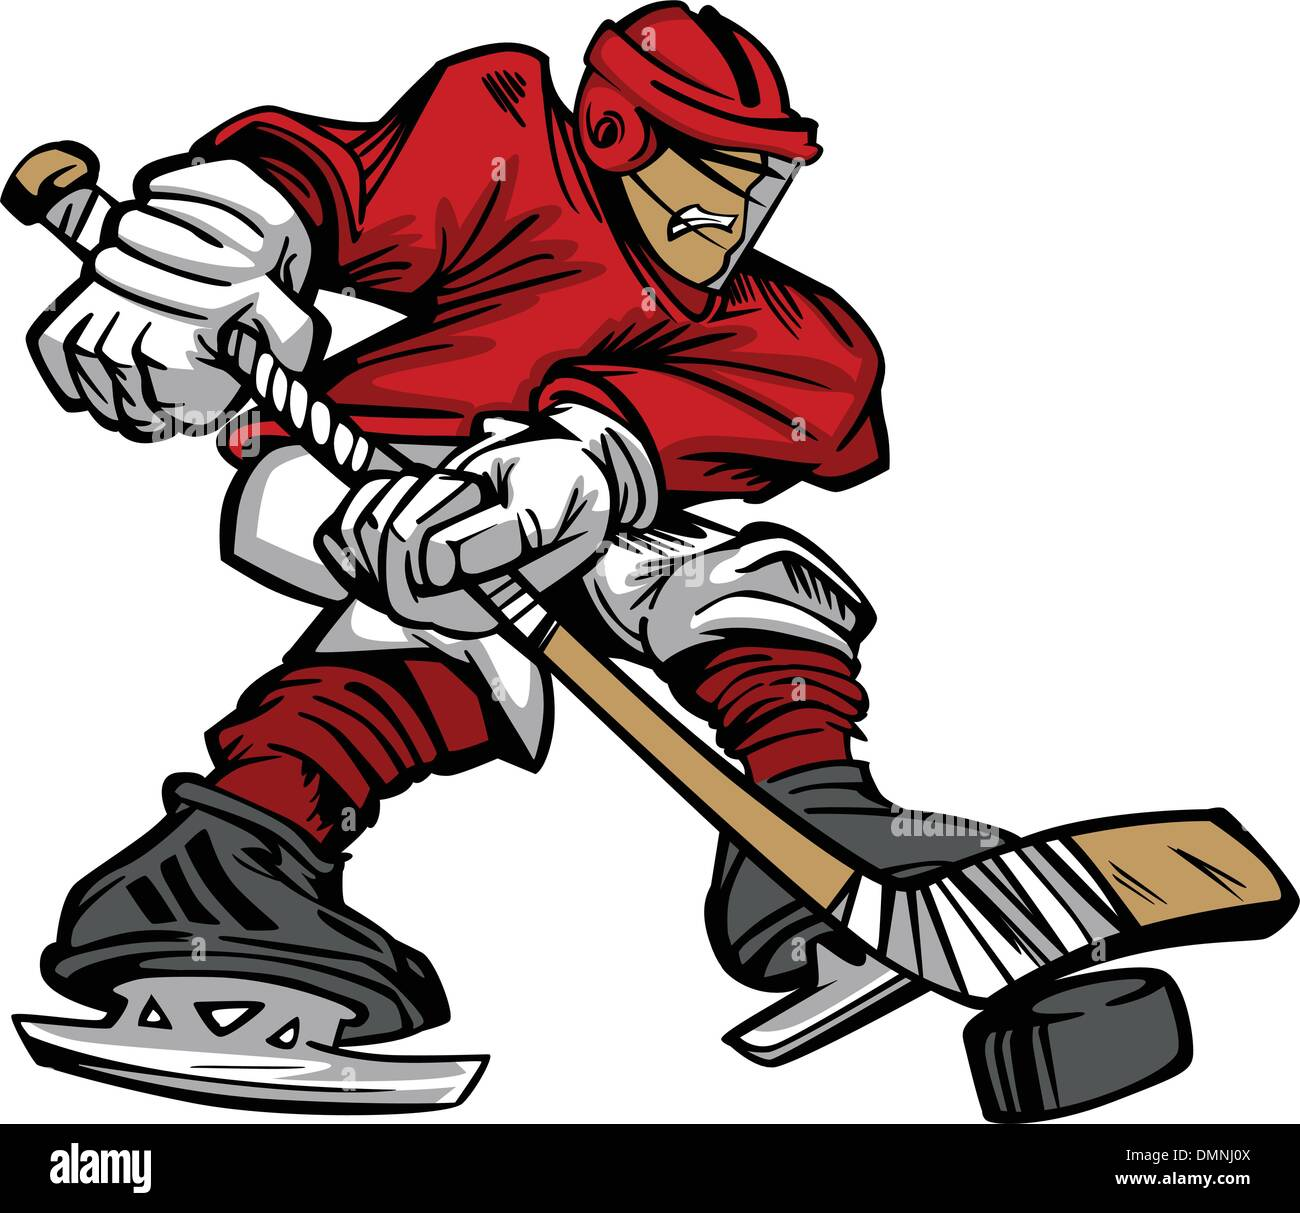 Cartoon Hockey Player High Resolution Stock Photography And Images Alamy